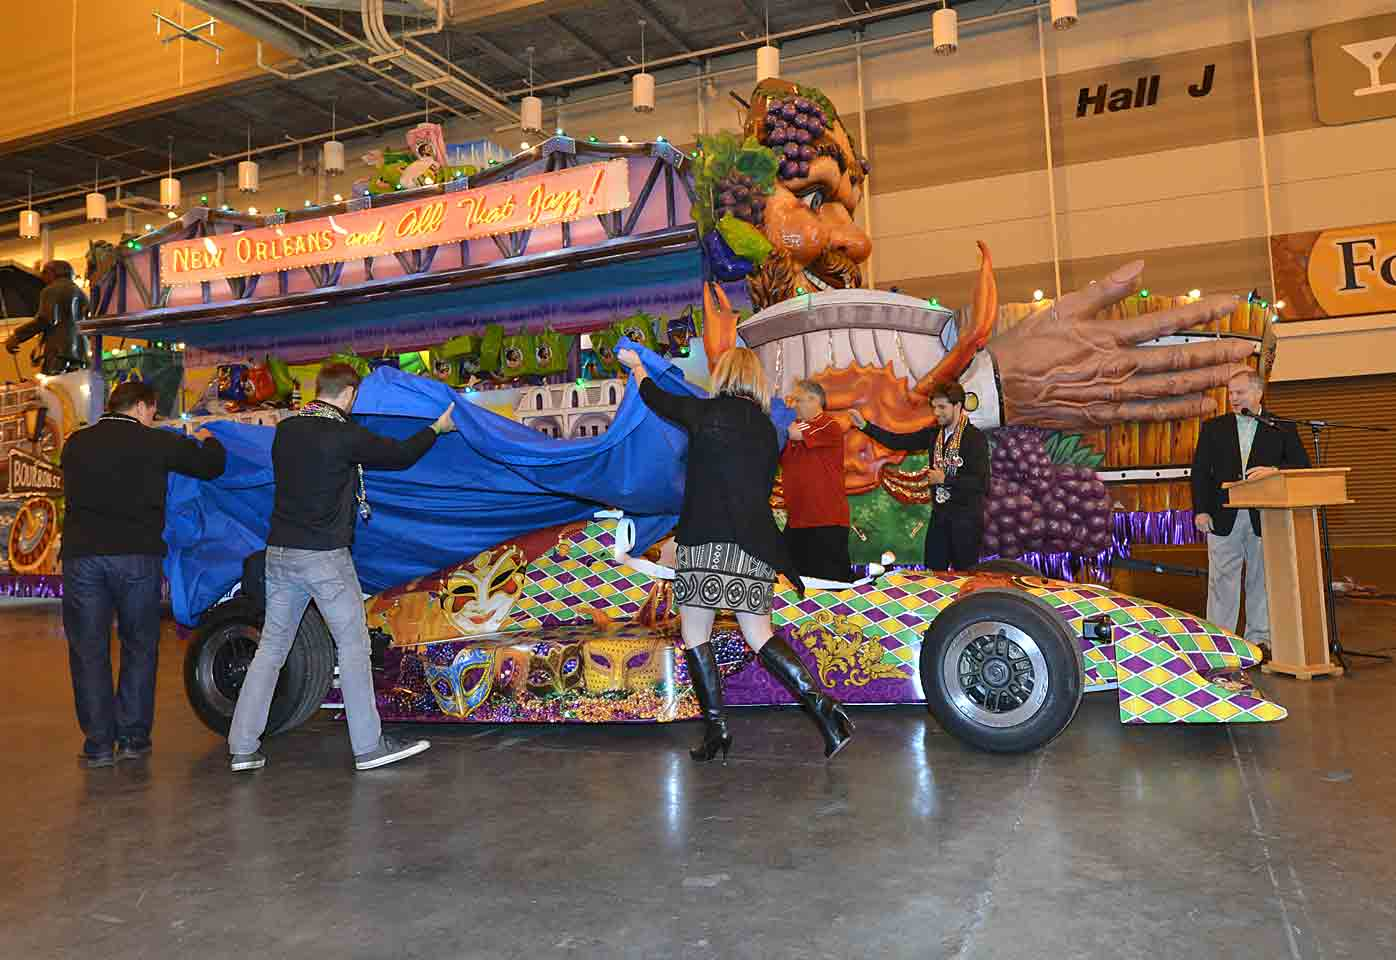 Unveiling the super cool Mardi-Gras themed two-seater that led the IndyCar contingent in the parade.